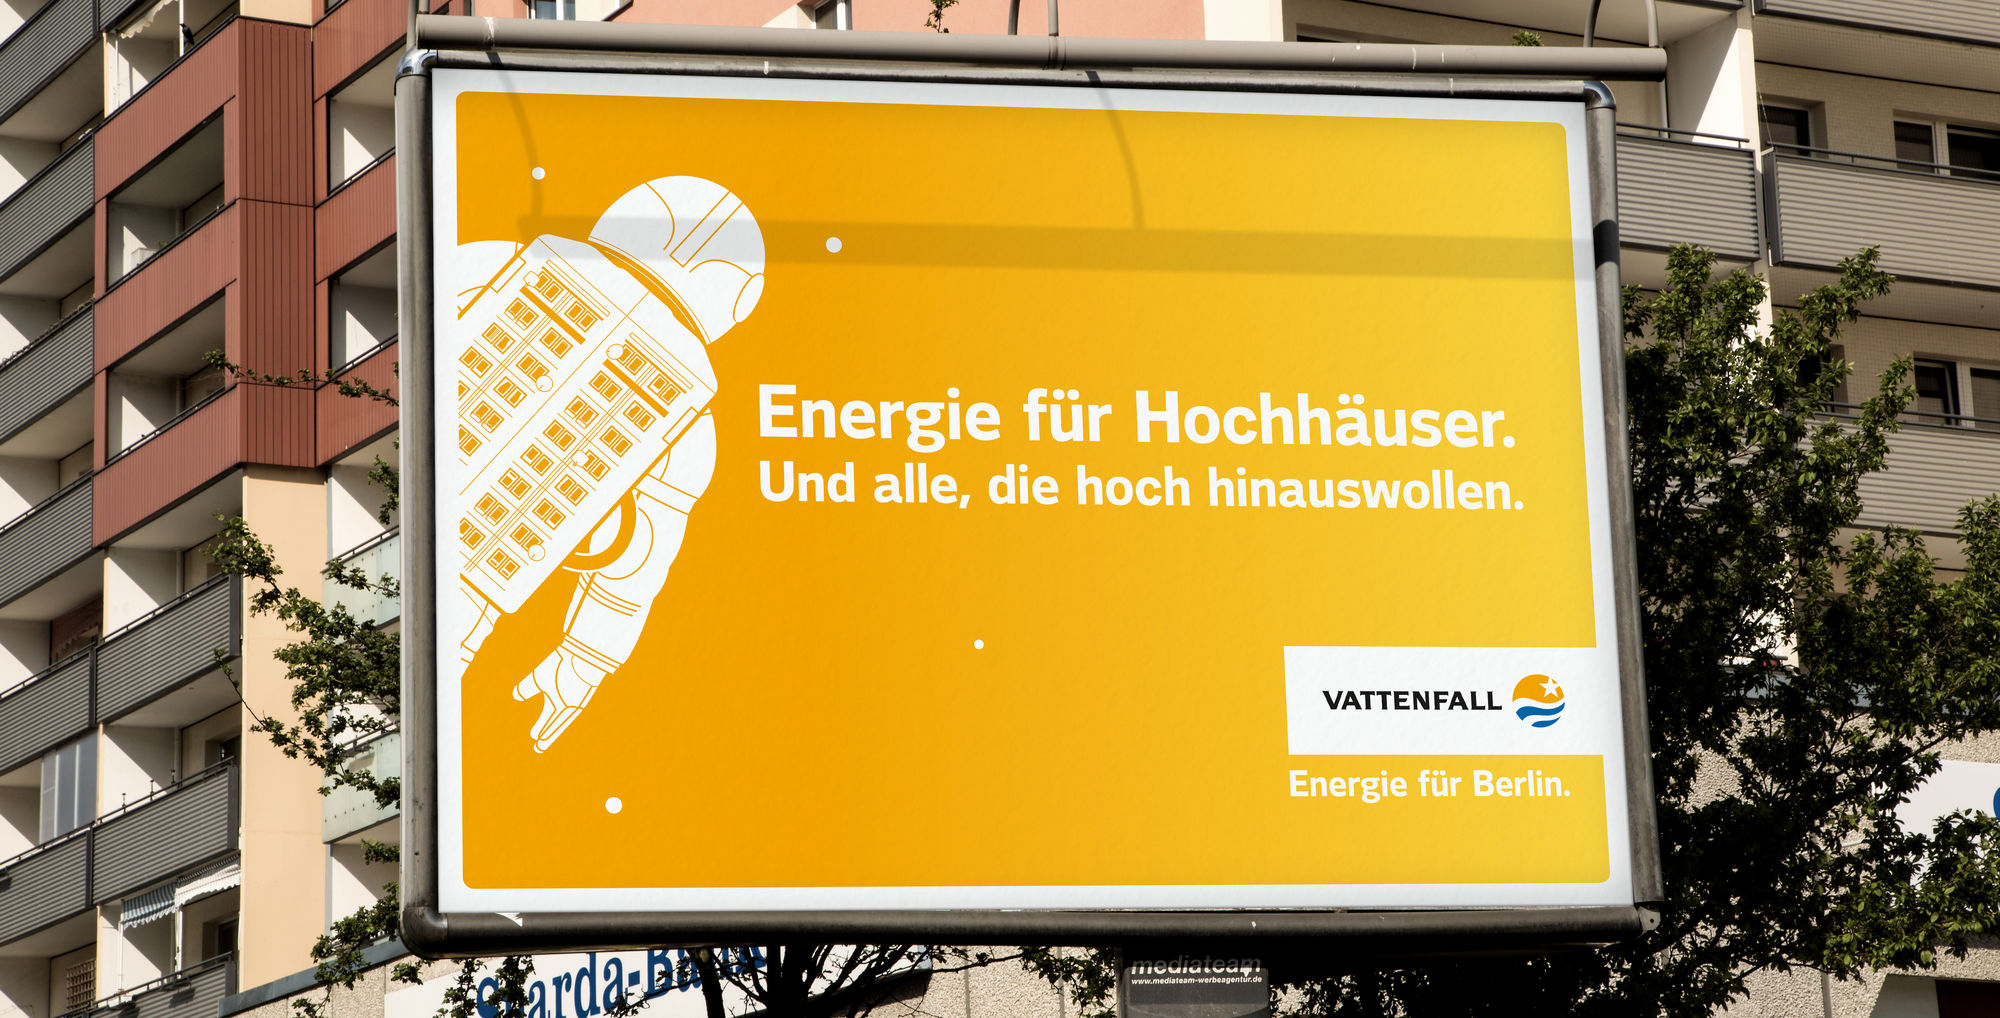 FLORIAN HUCKER for VATTENFALL